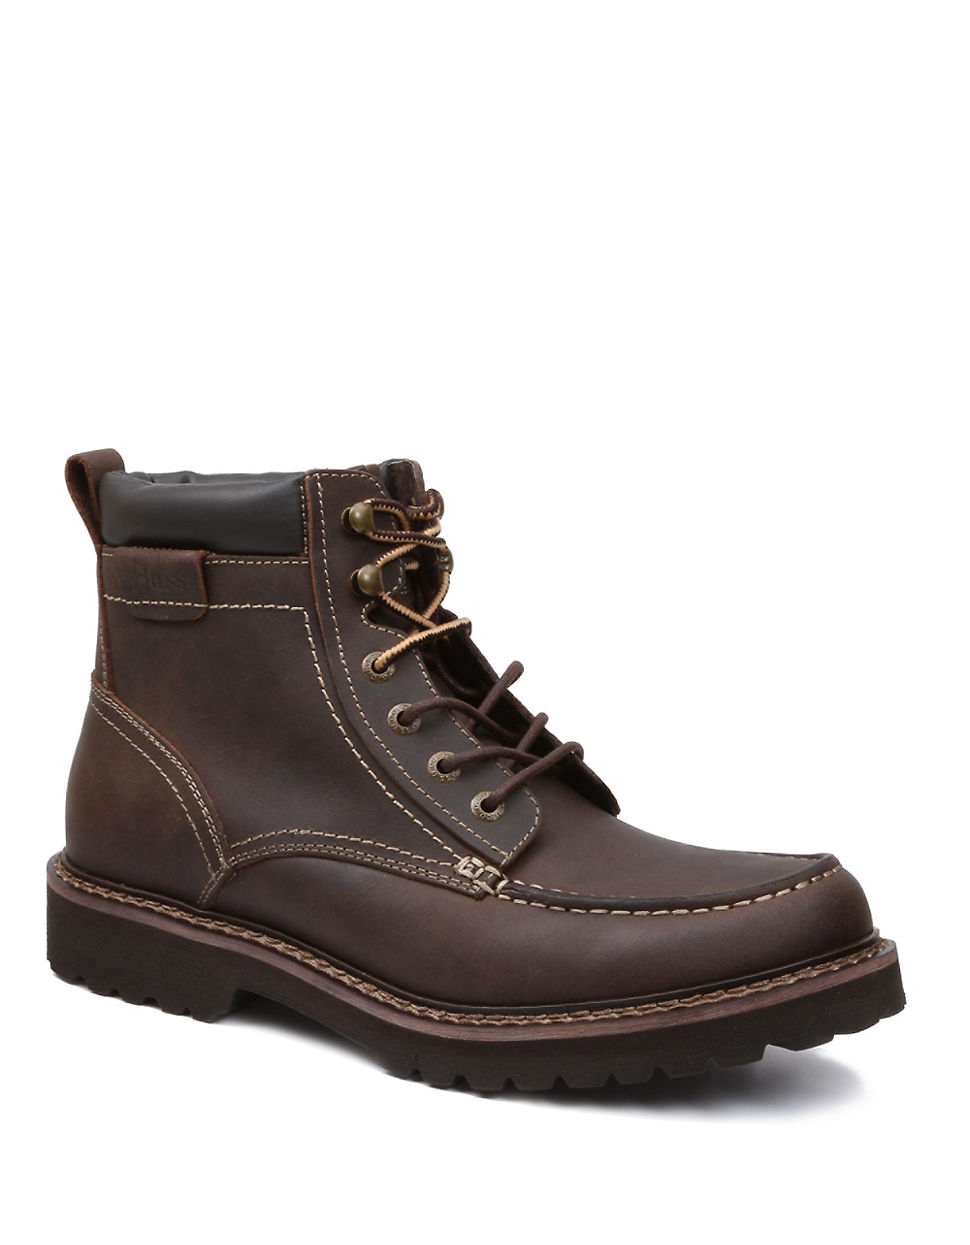 g h bass co errol leather boots in brown for lyst